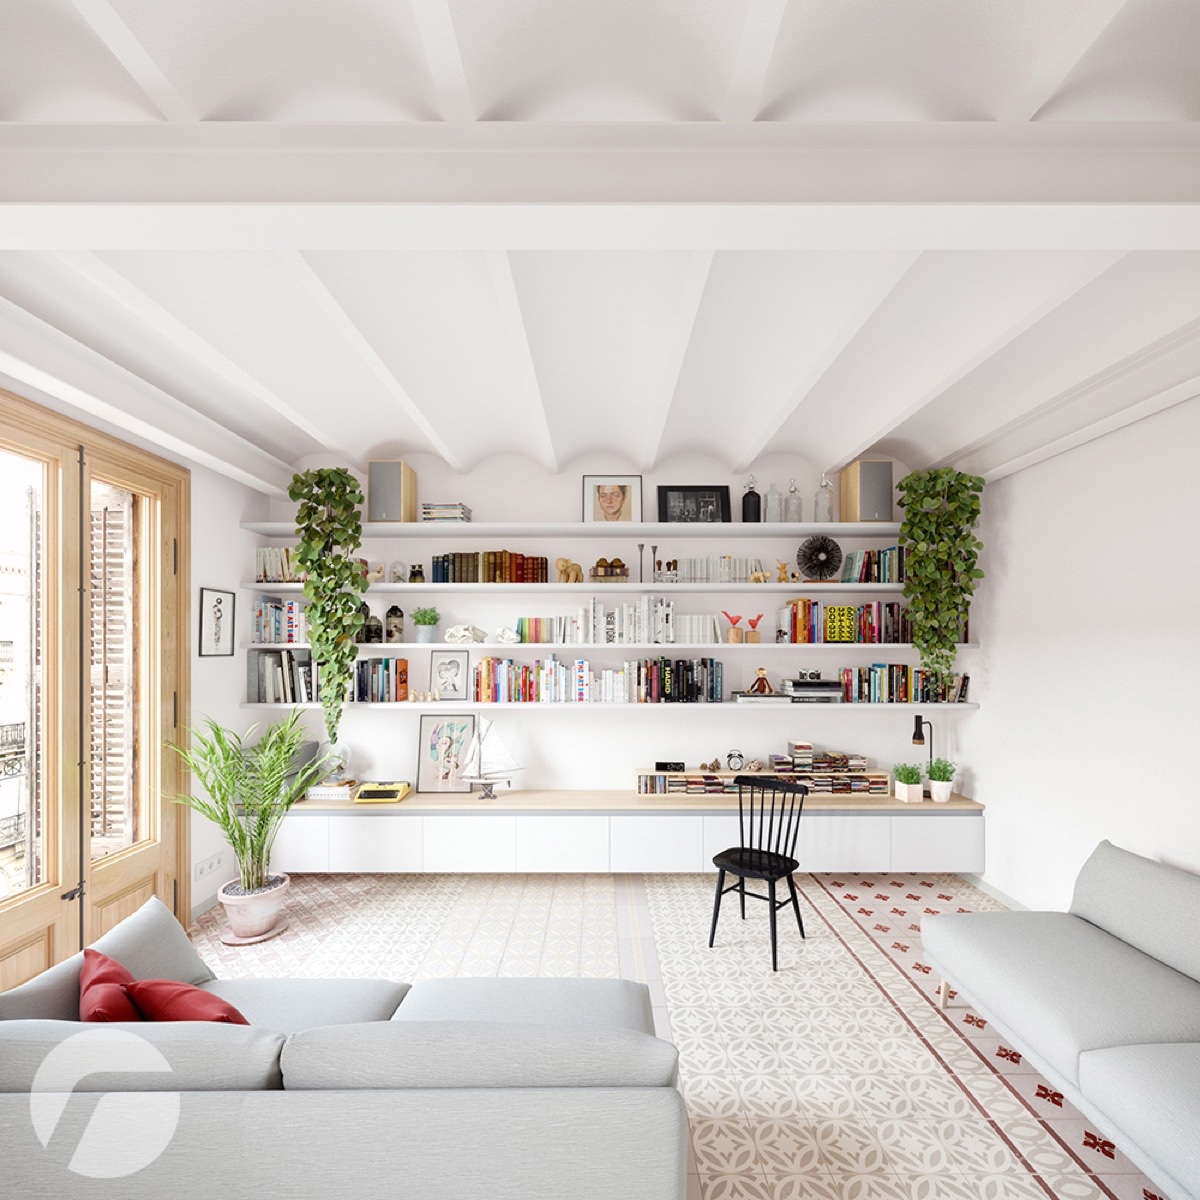 10 Stunning Apartments That Show Off The